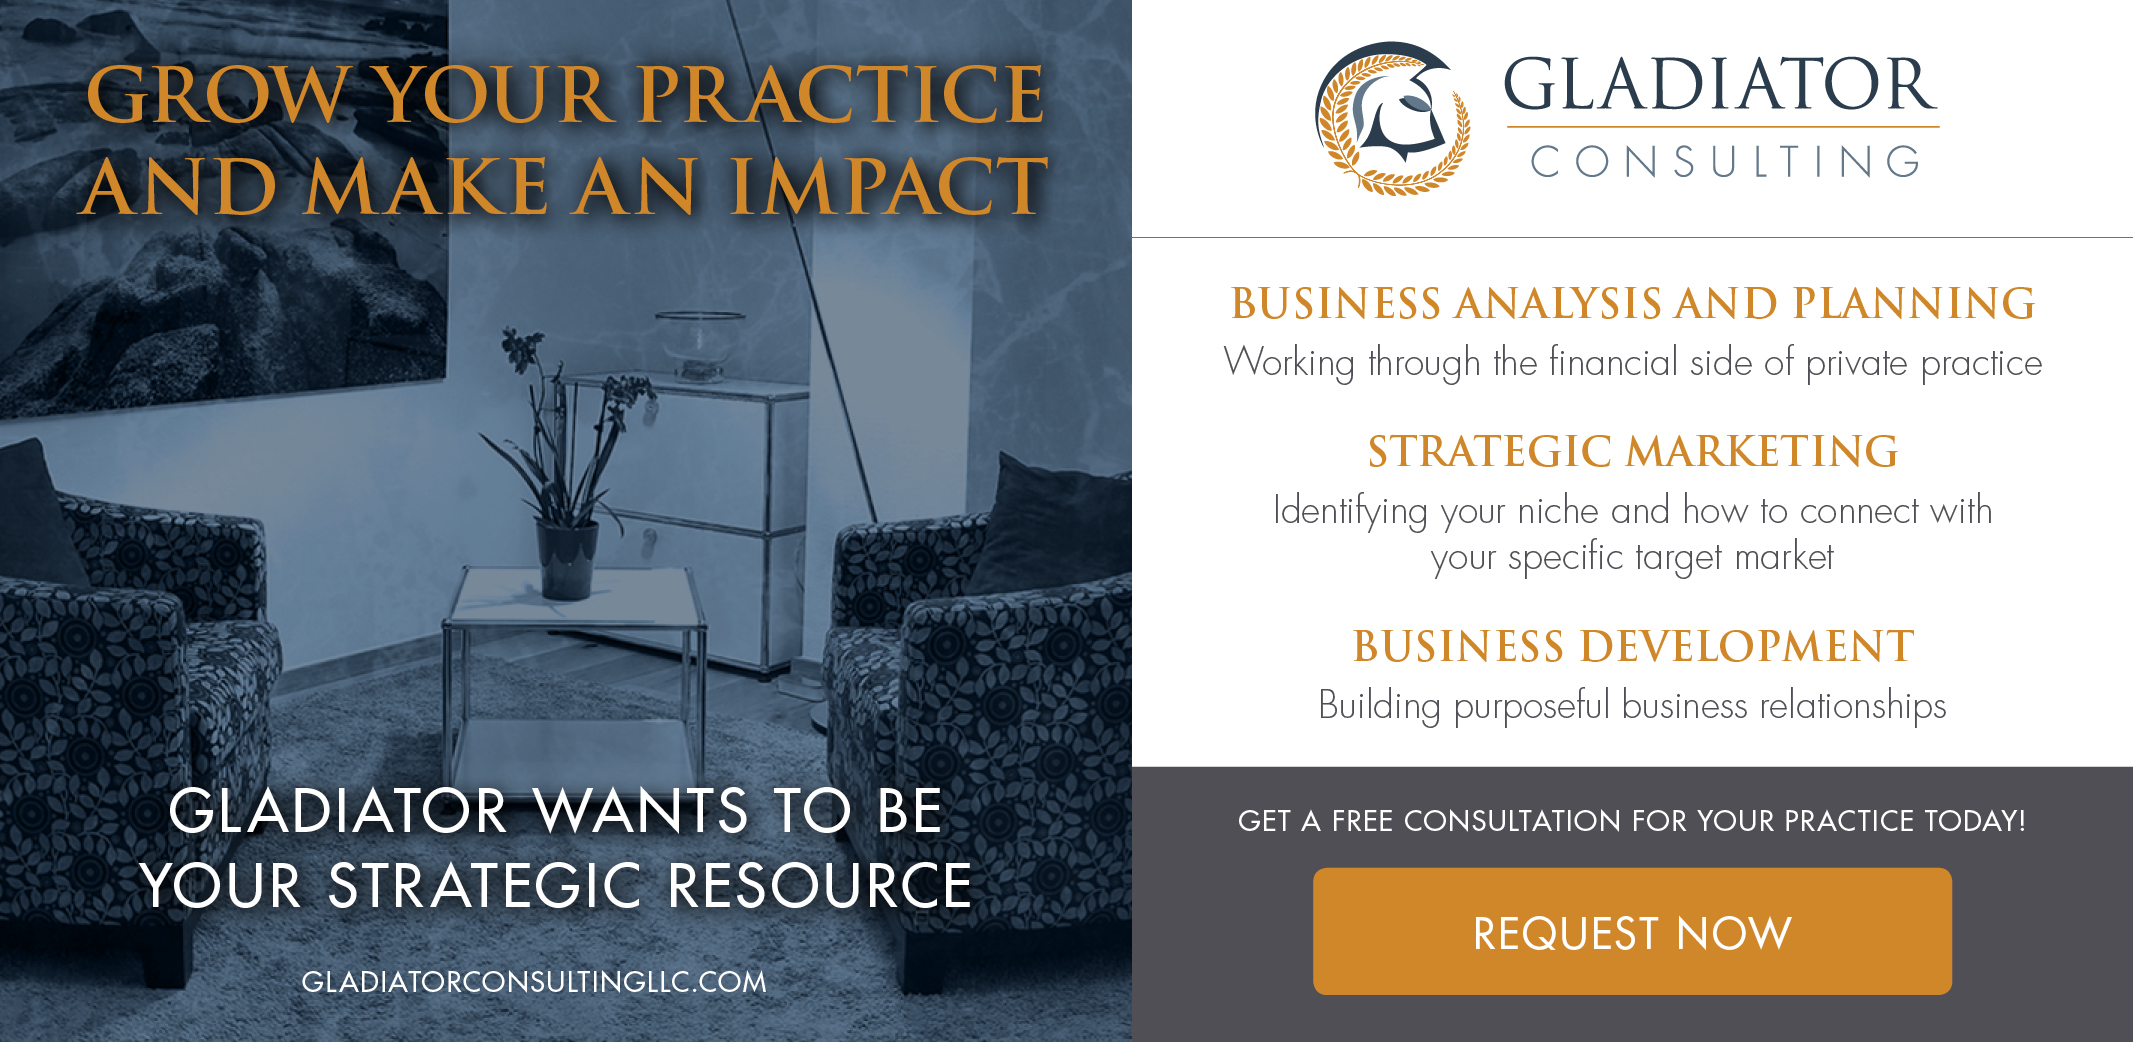 Gladiator Consulting marketing for psychologists therapists counselors